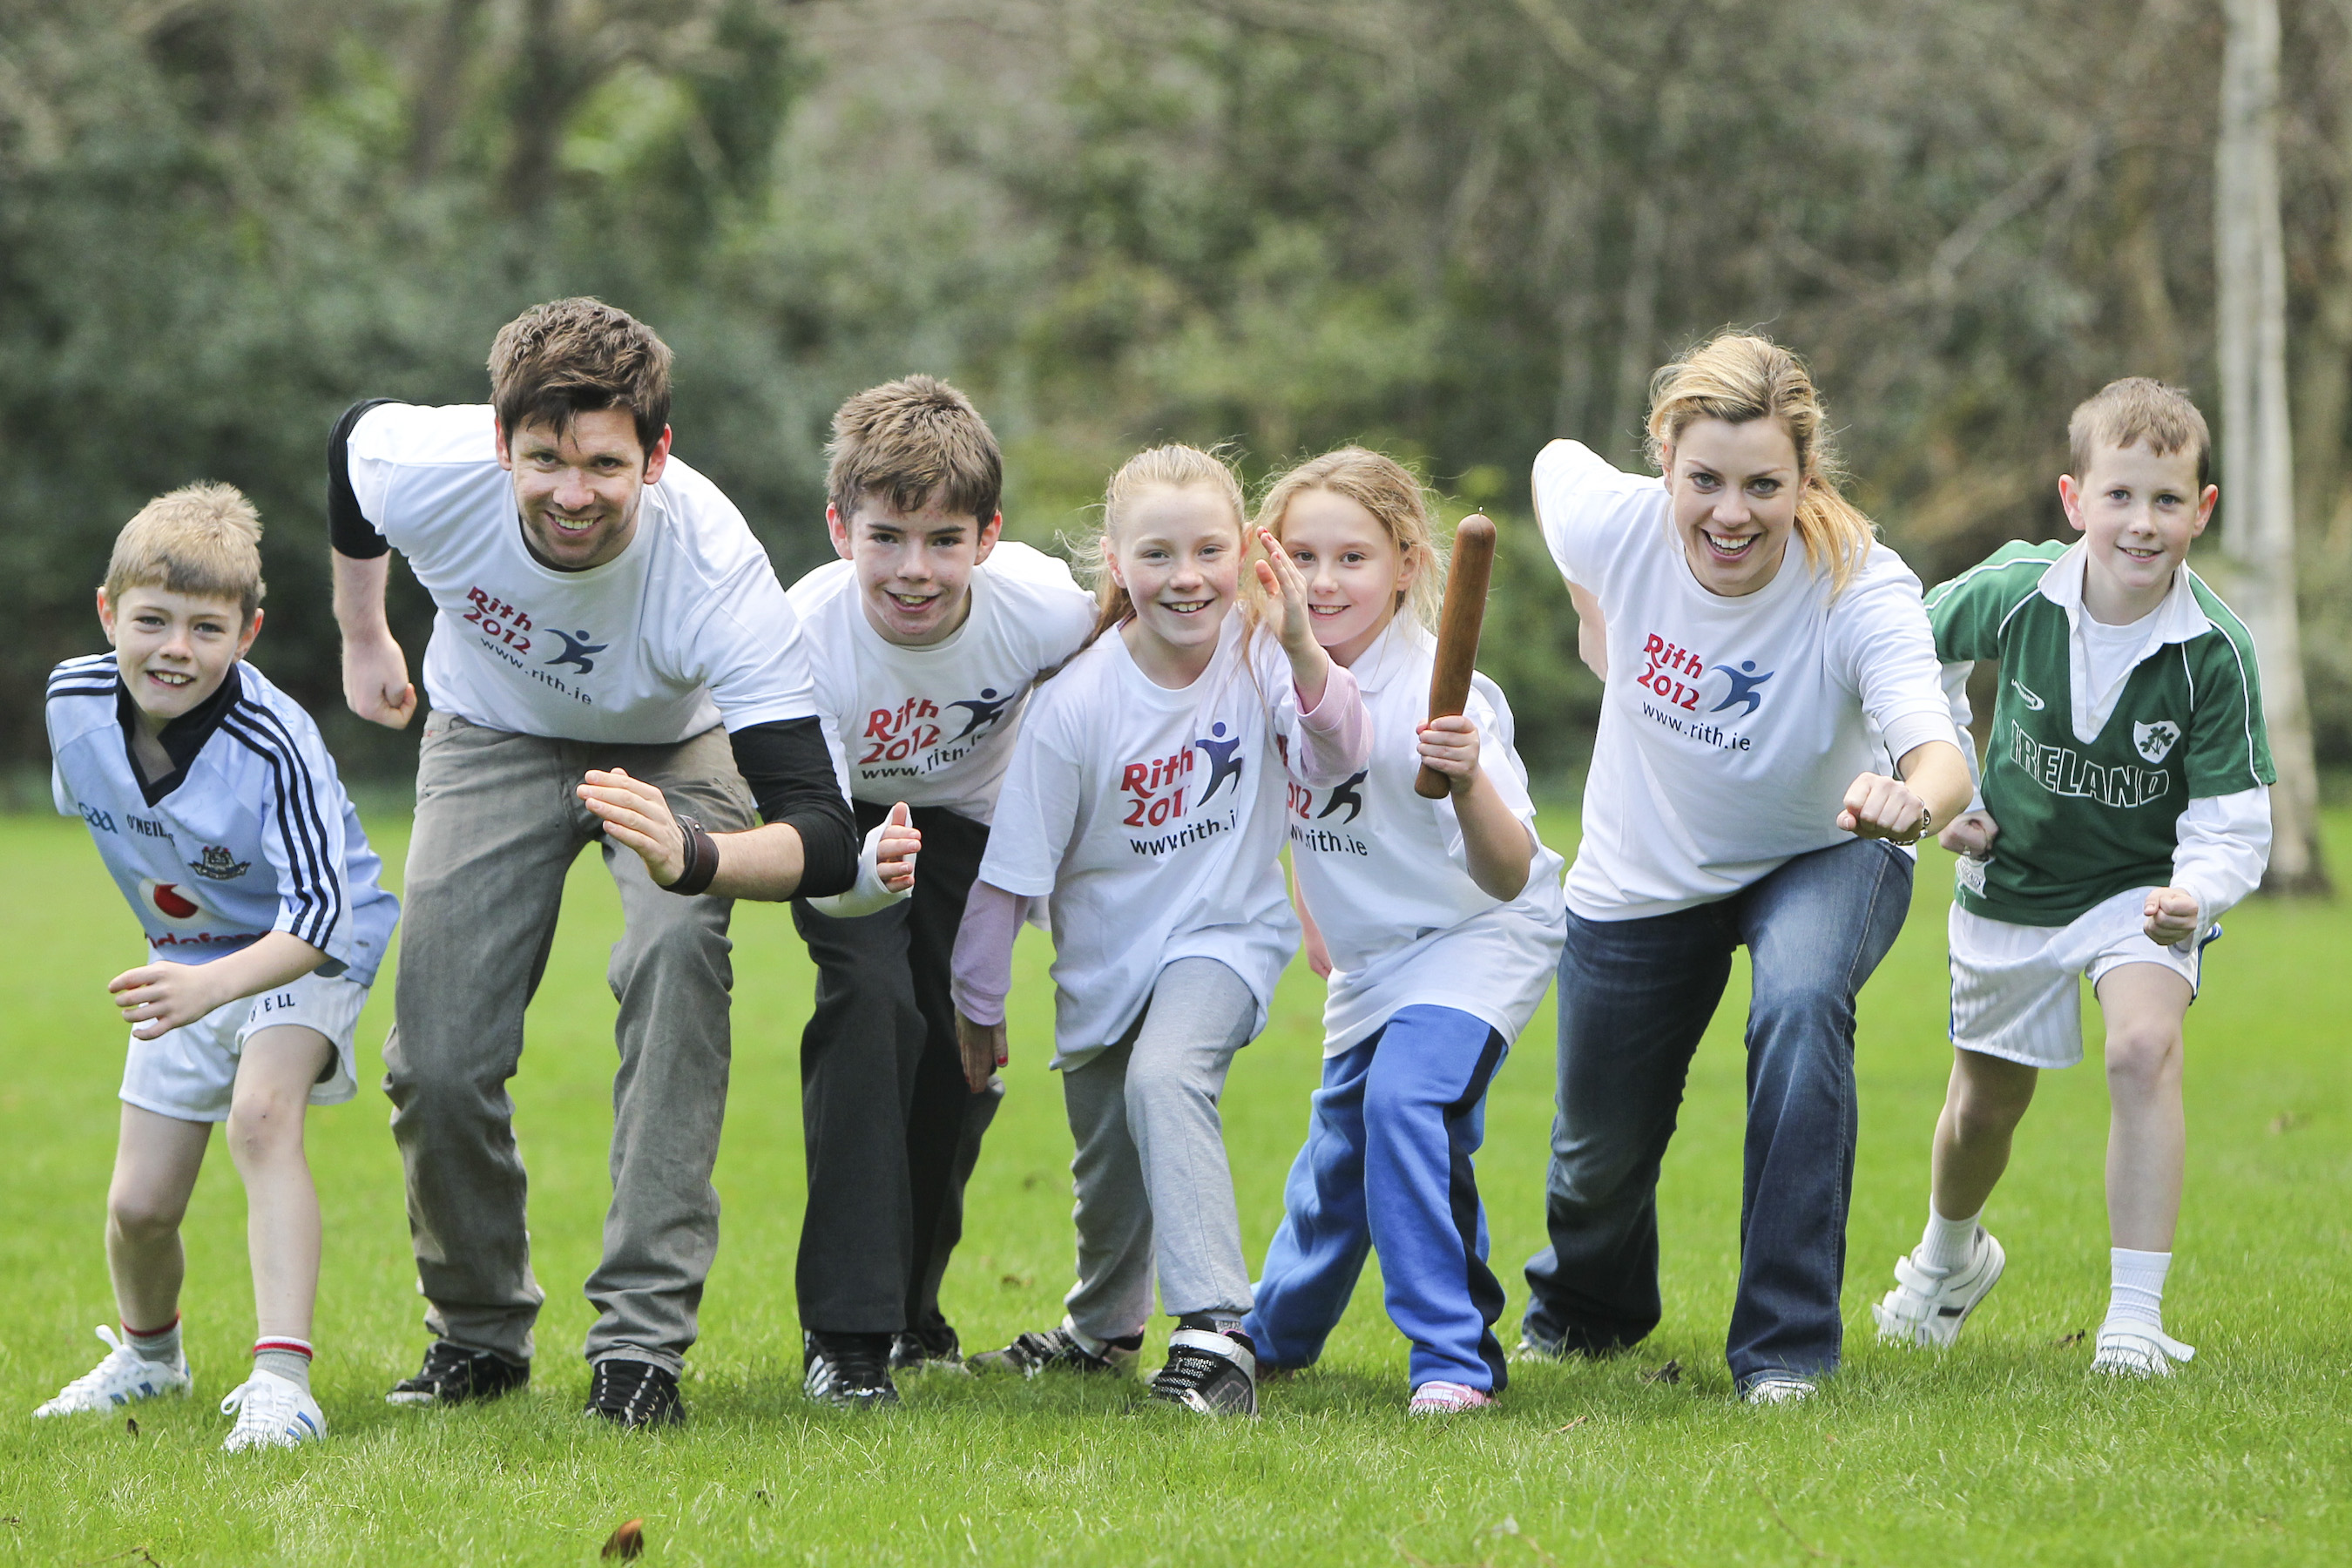 Rith 2012 | Massive relay race and national festival for the Irish language | www.rith.ie